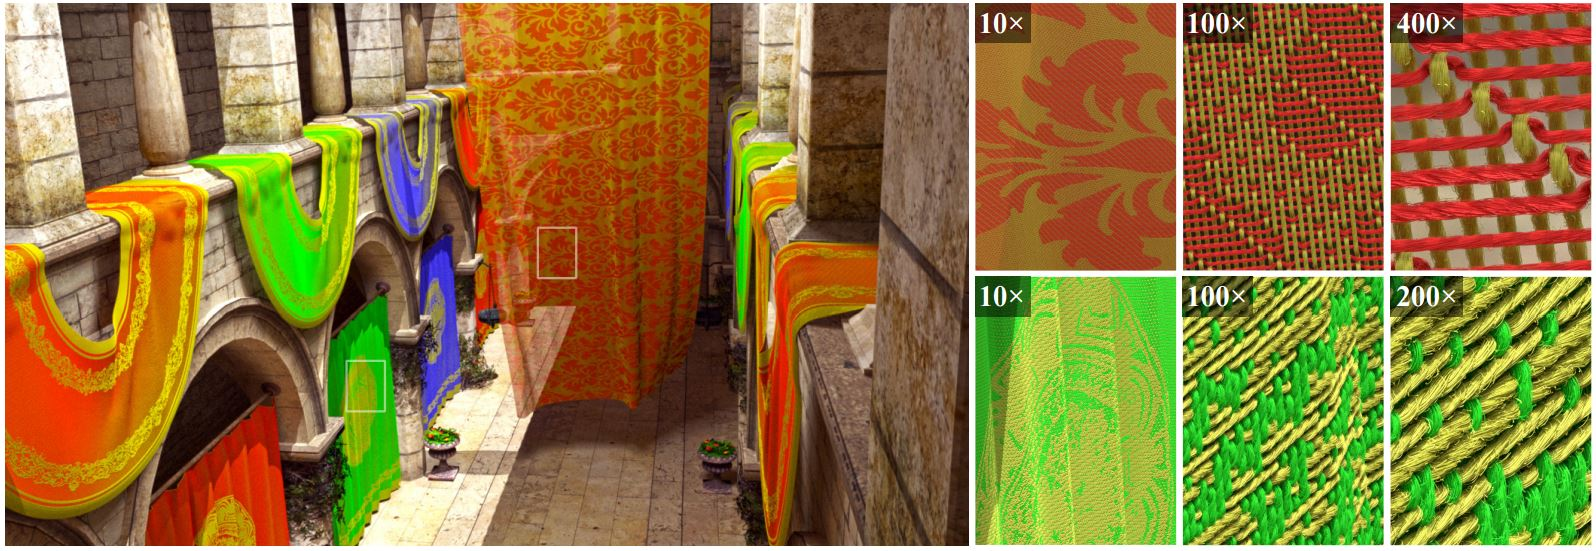 Modeling and Rendering Fabrics at Micron-Resolution